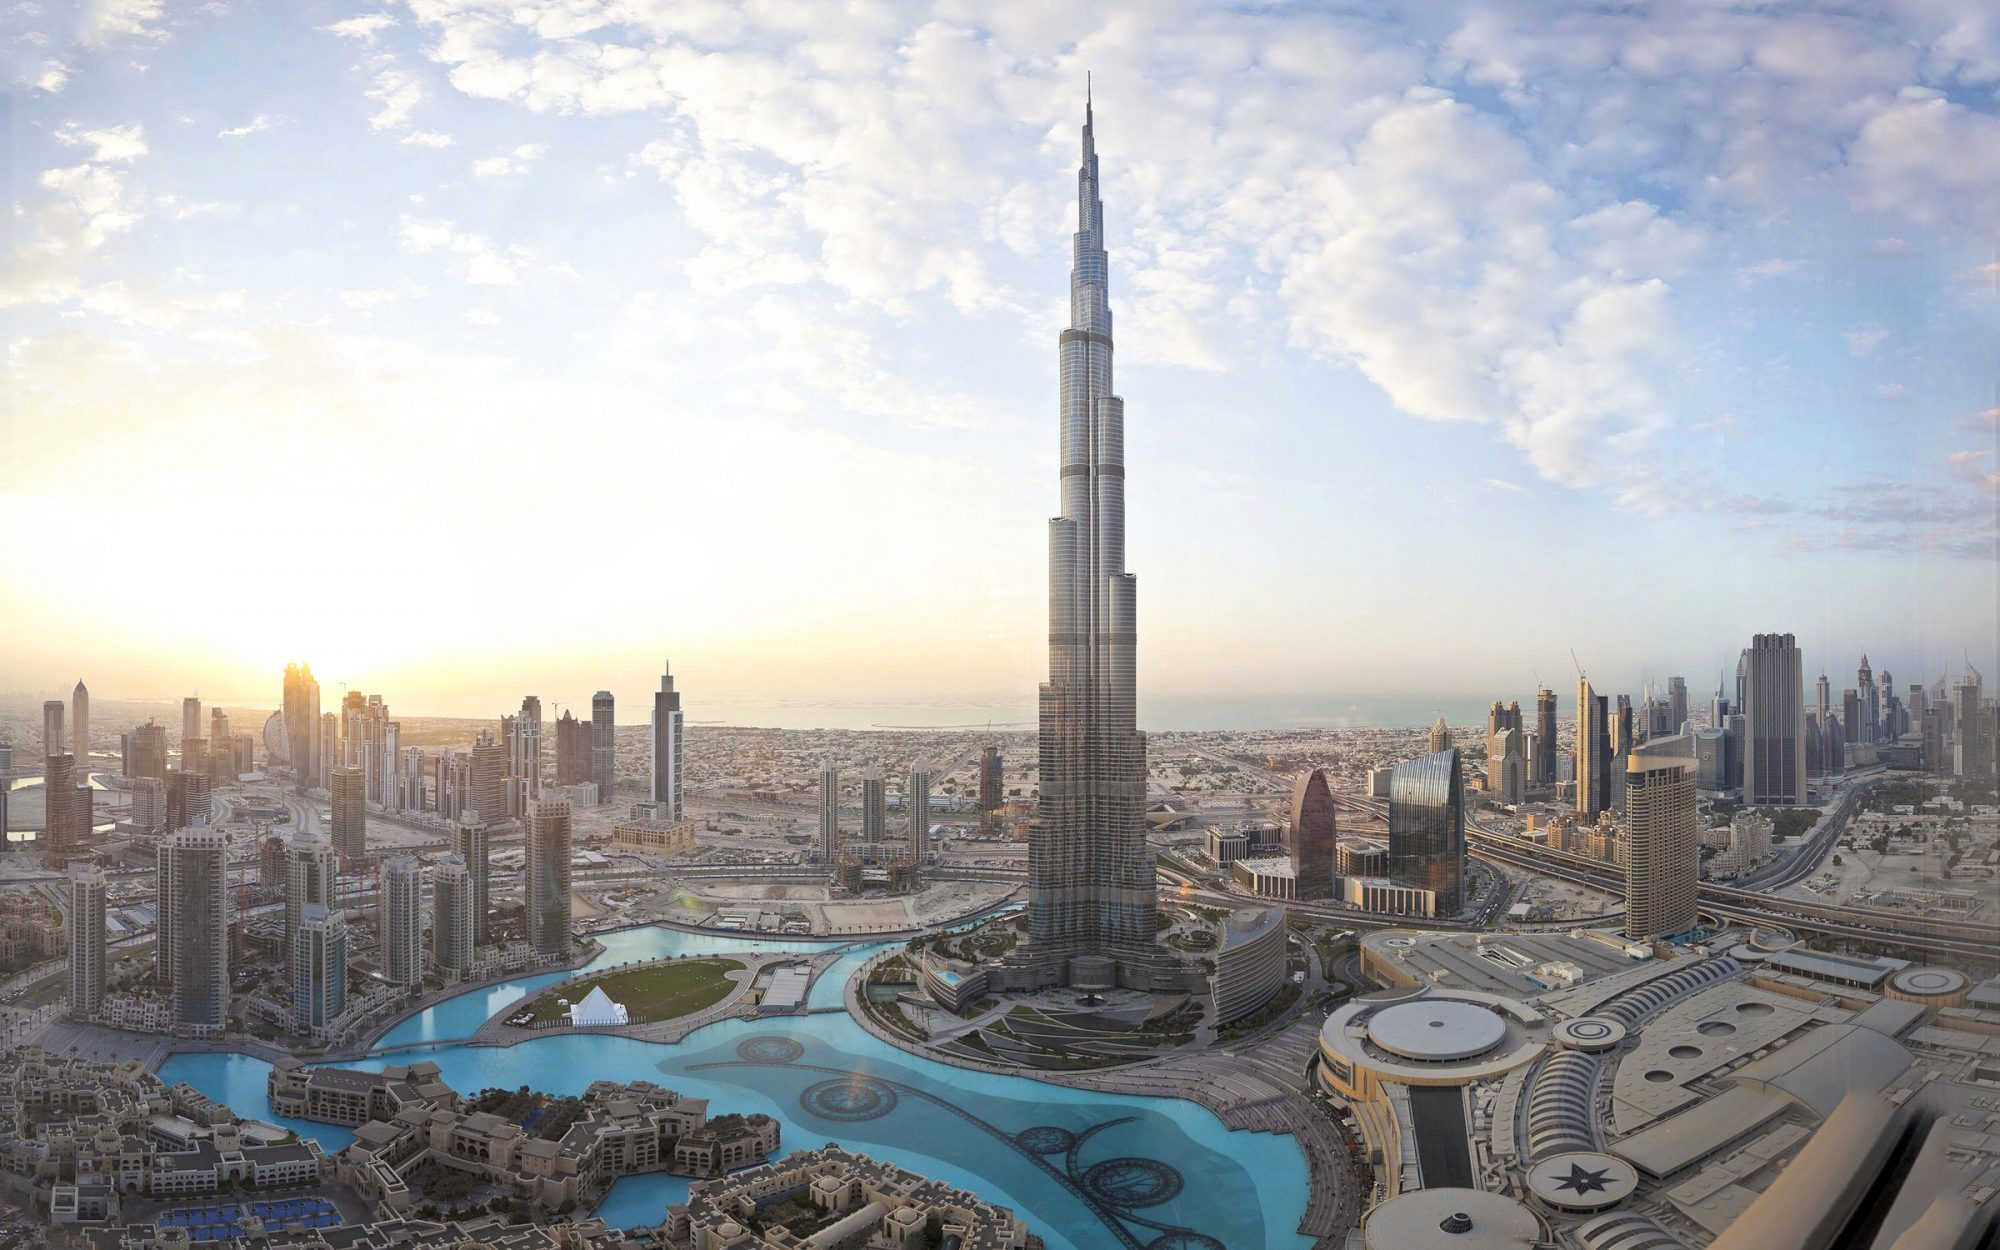 Secrets of the Burj Khalifa